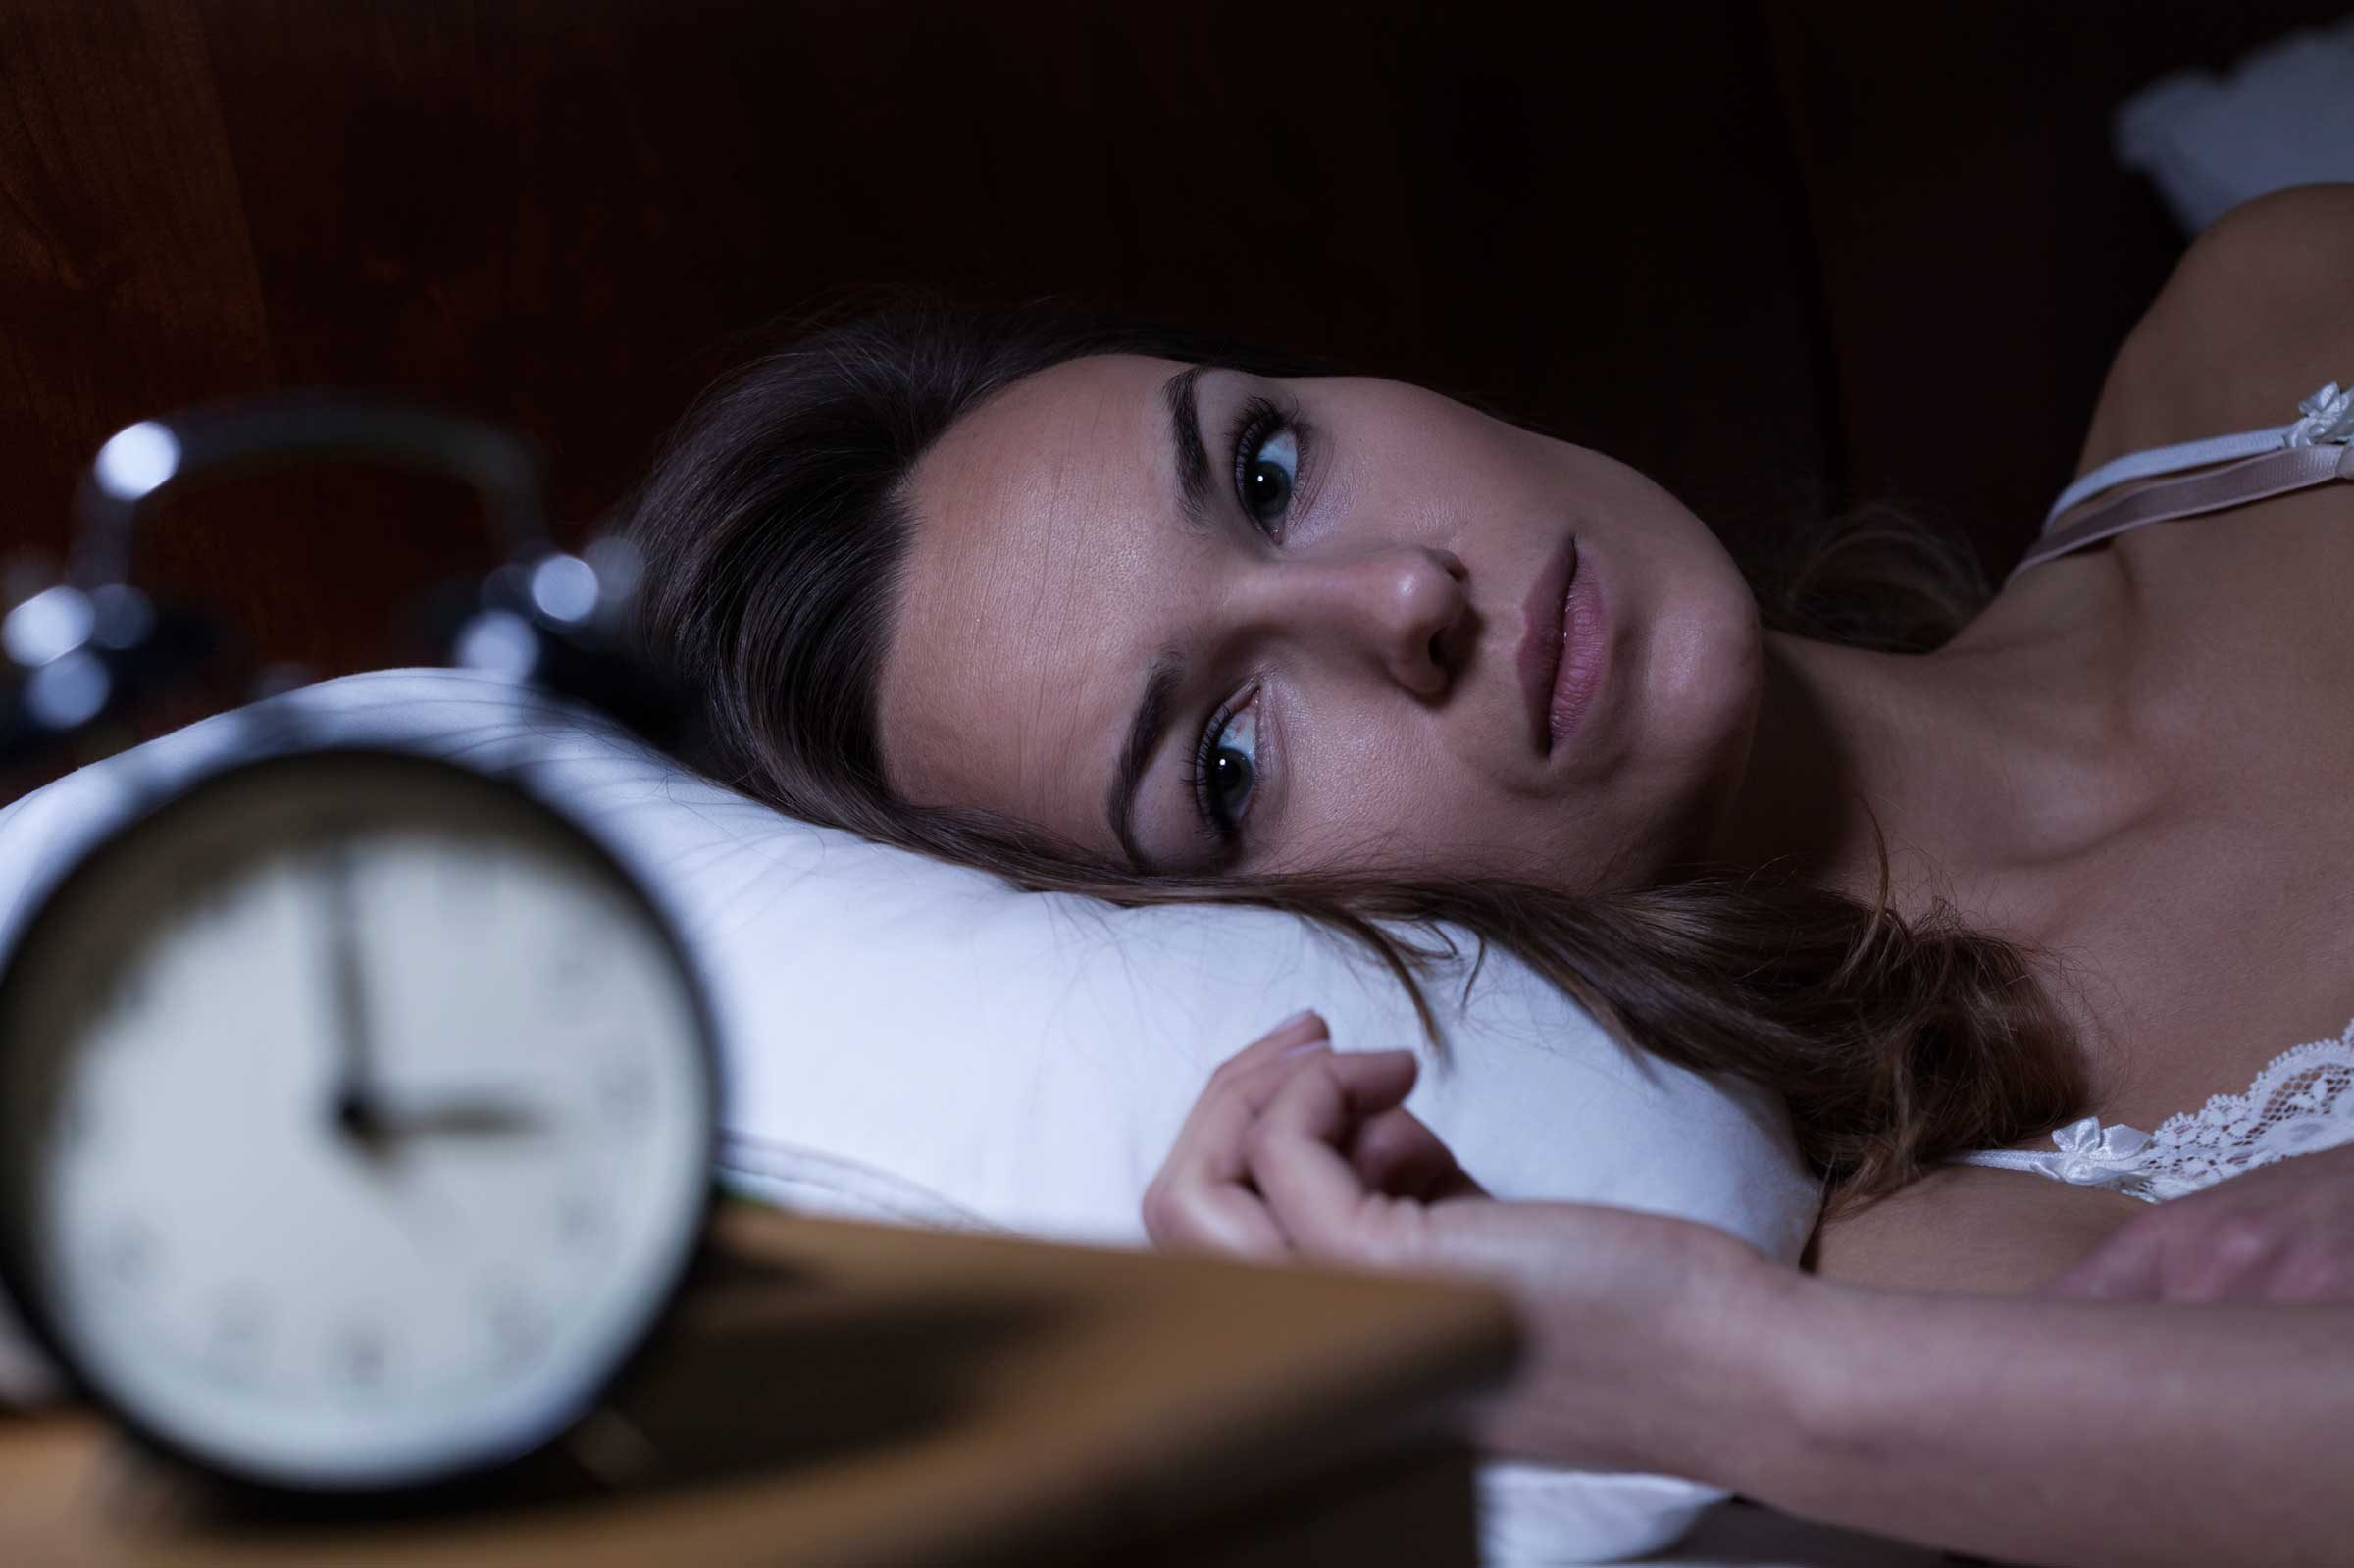 Not sleeping? You're increasing your cancer risk.